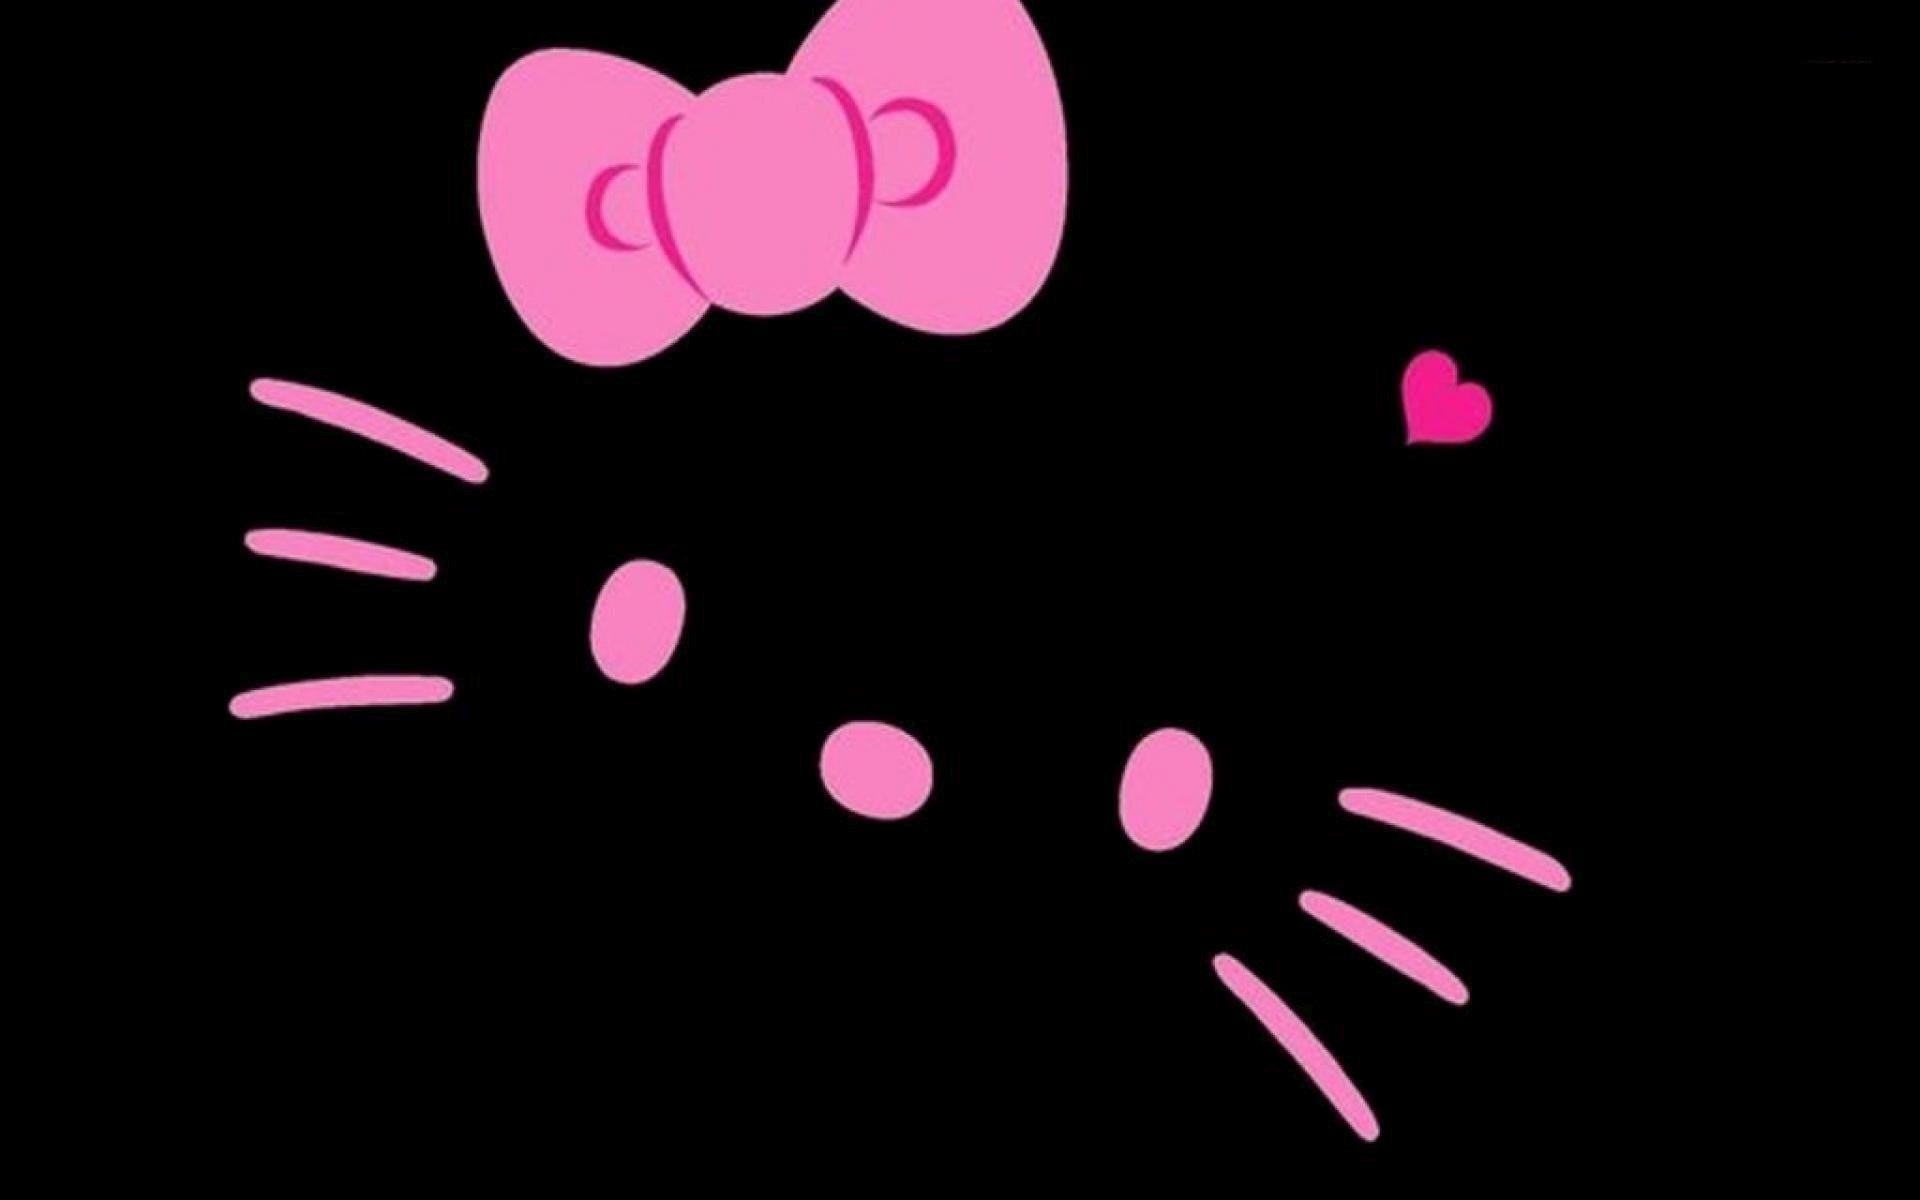 1920x1200 hello kitty wallpaper pink and black love